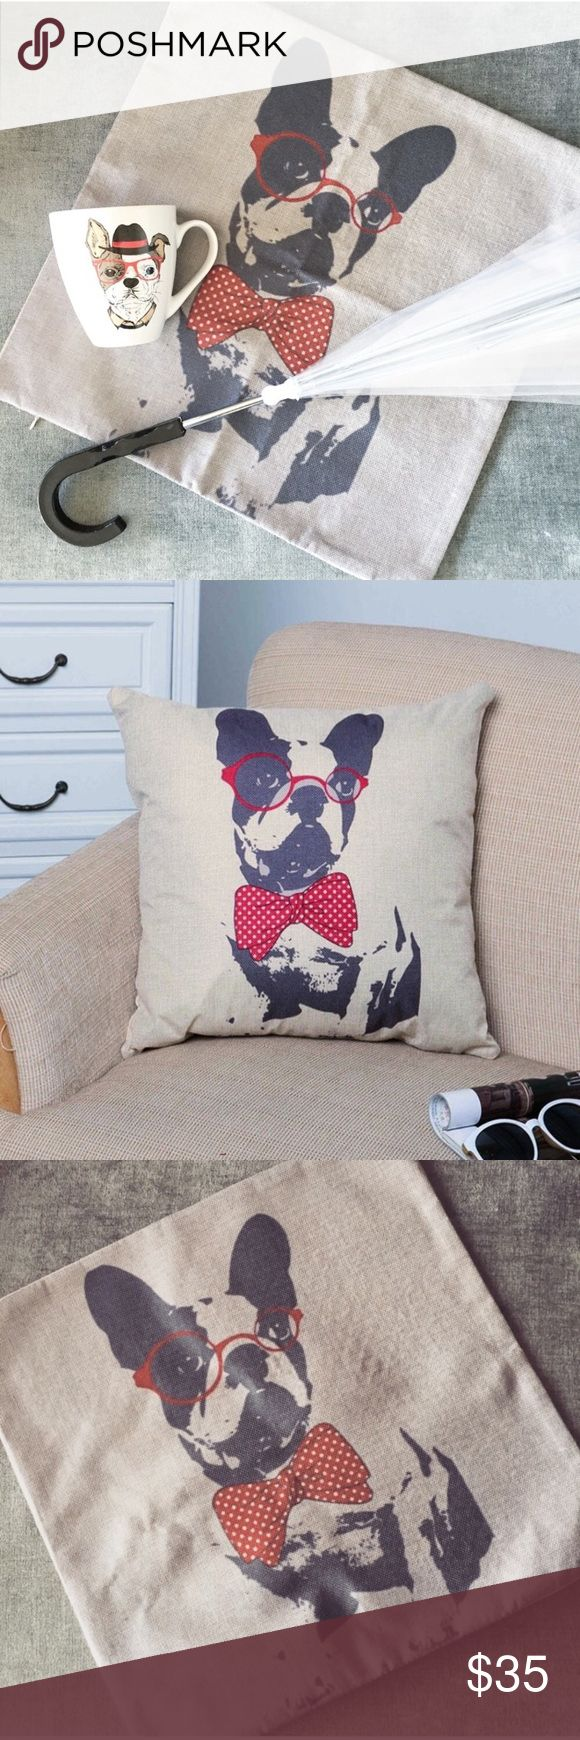 DOG LOVER SET mug dogs umbrella and pillow case Great condition. Never used. Perfect for a Boston terrier lover owner. Black white red. Accessories